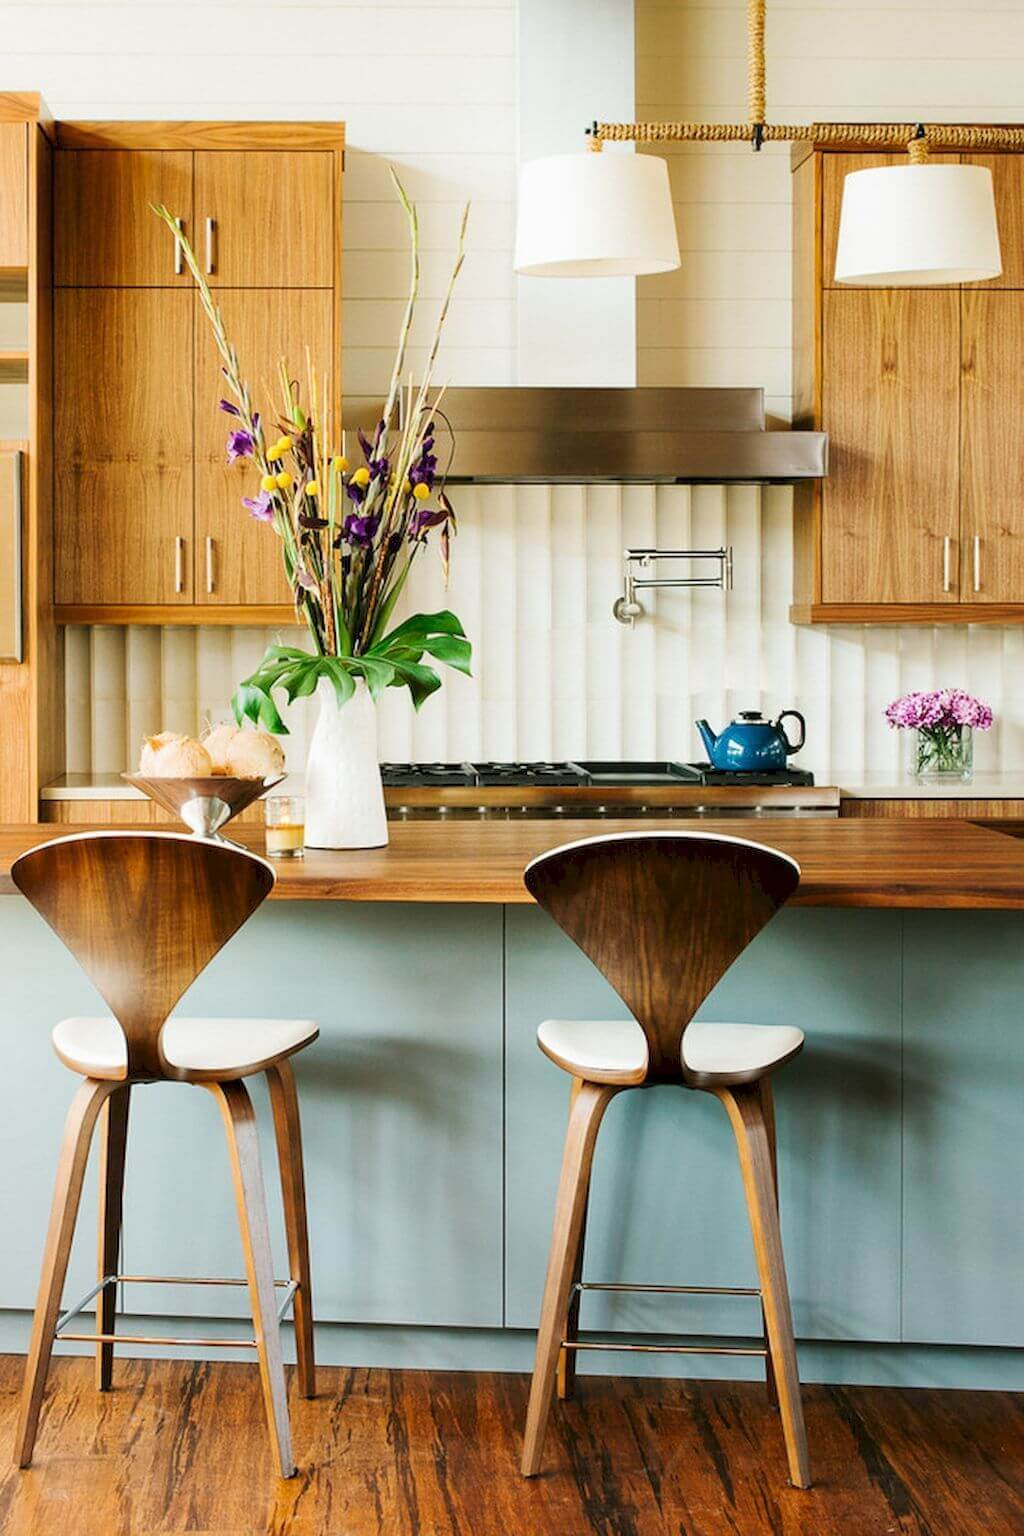 25 Mid Century Modern Kitchen Ideas To Beautify Your Cooking Area - 8F519E39168B548D96B8E6B13E24D151